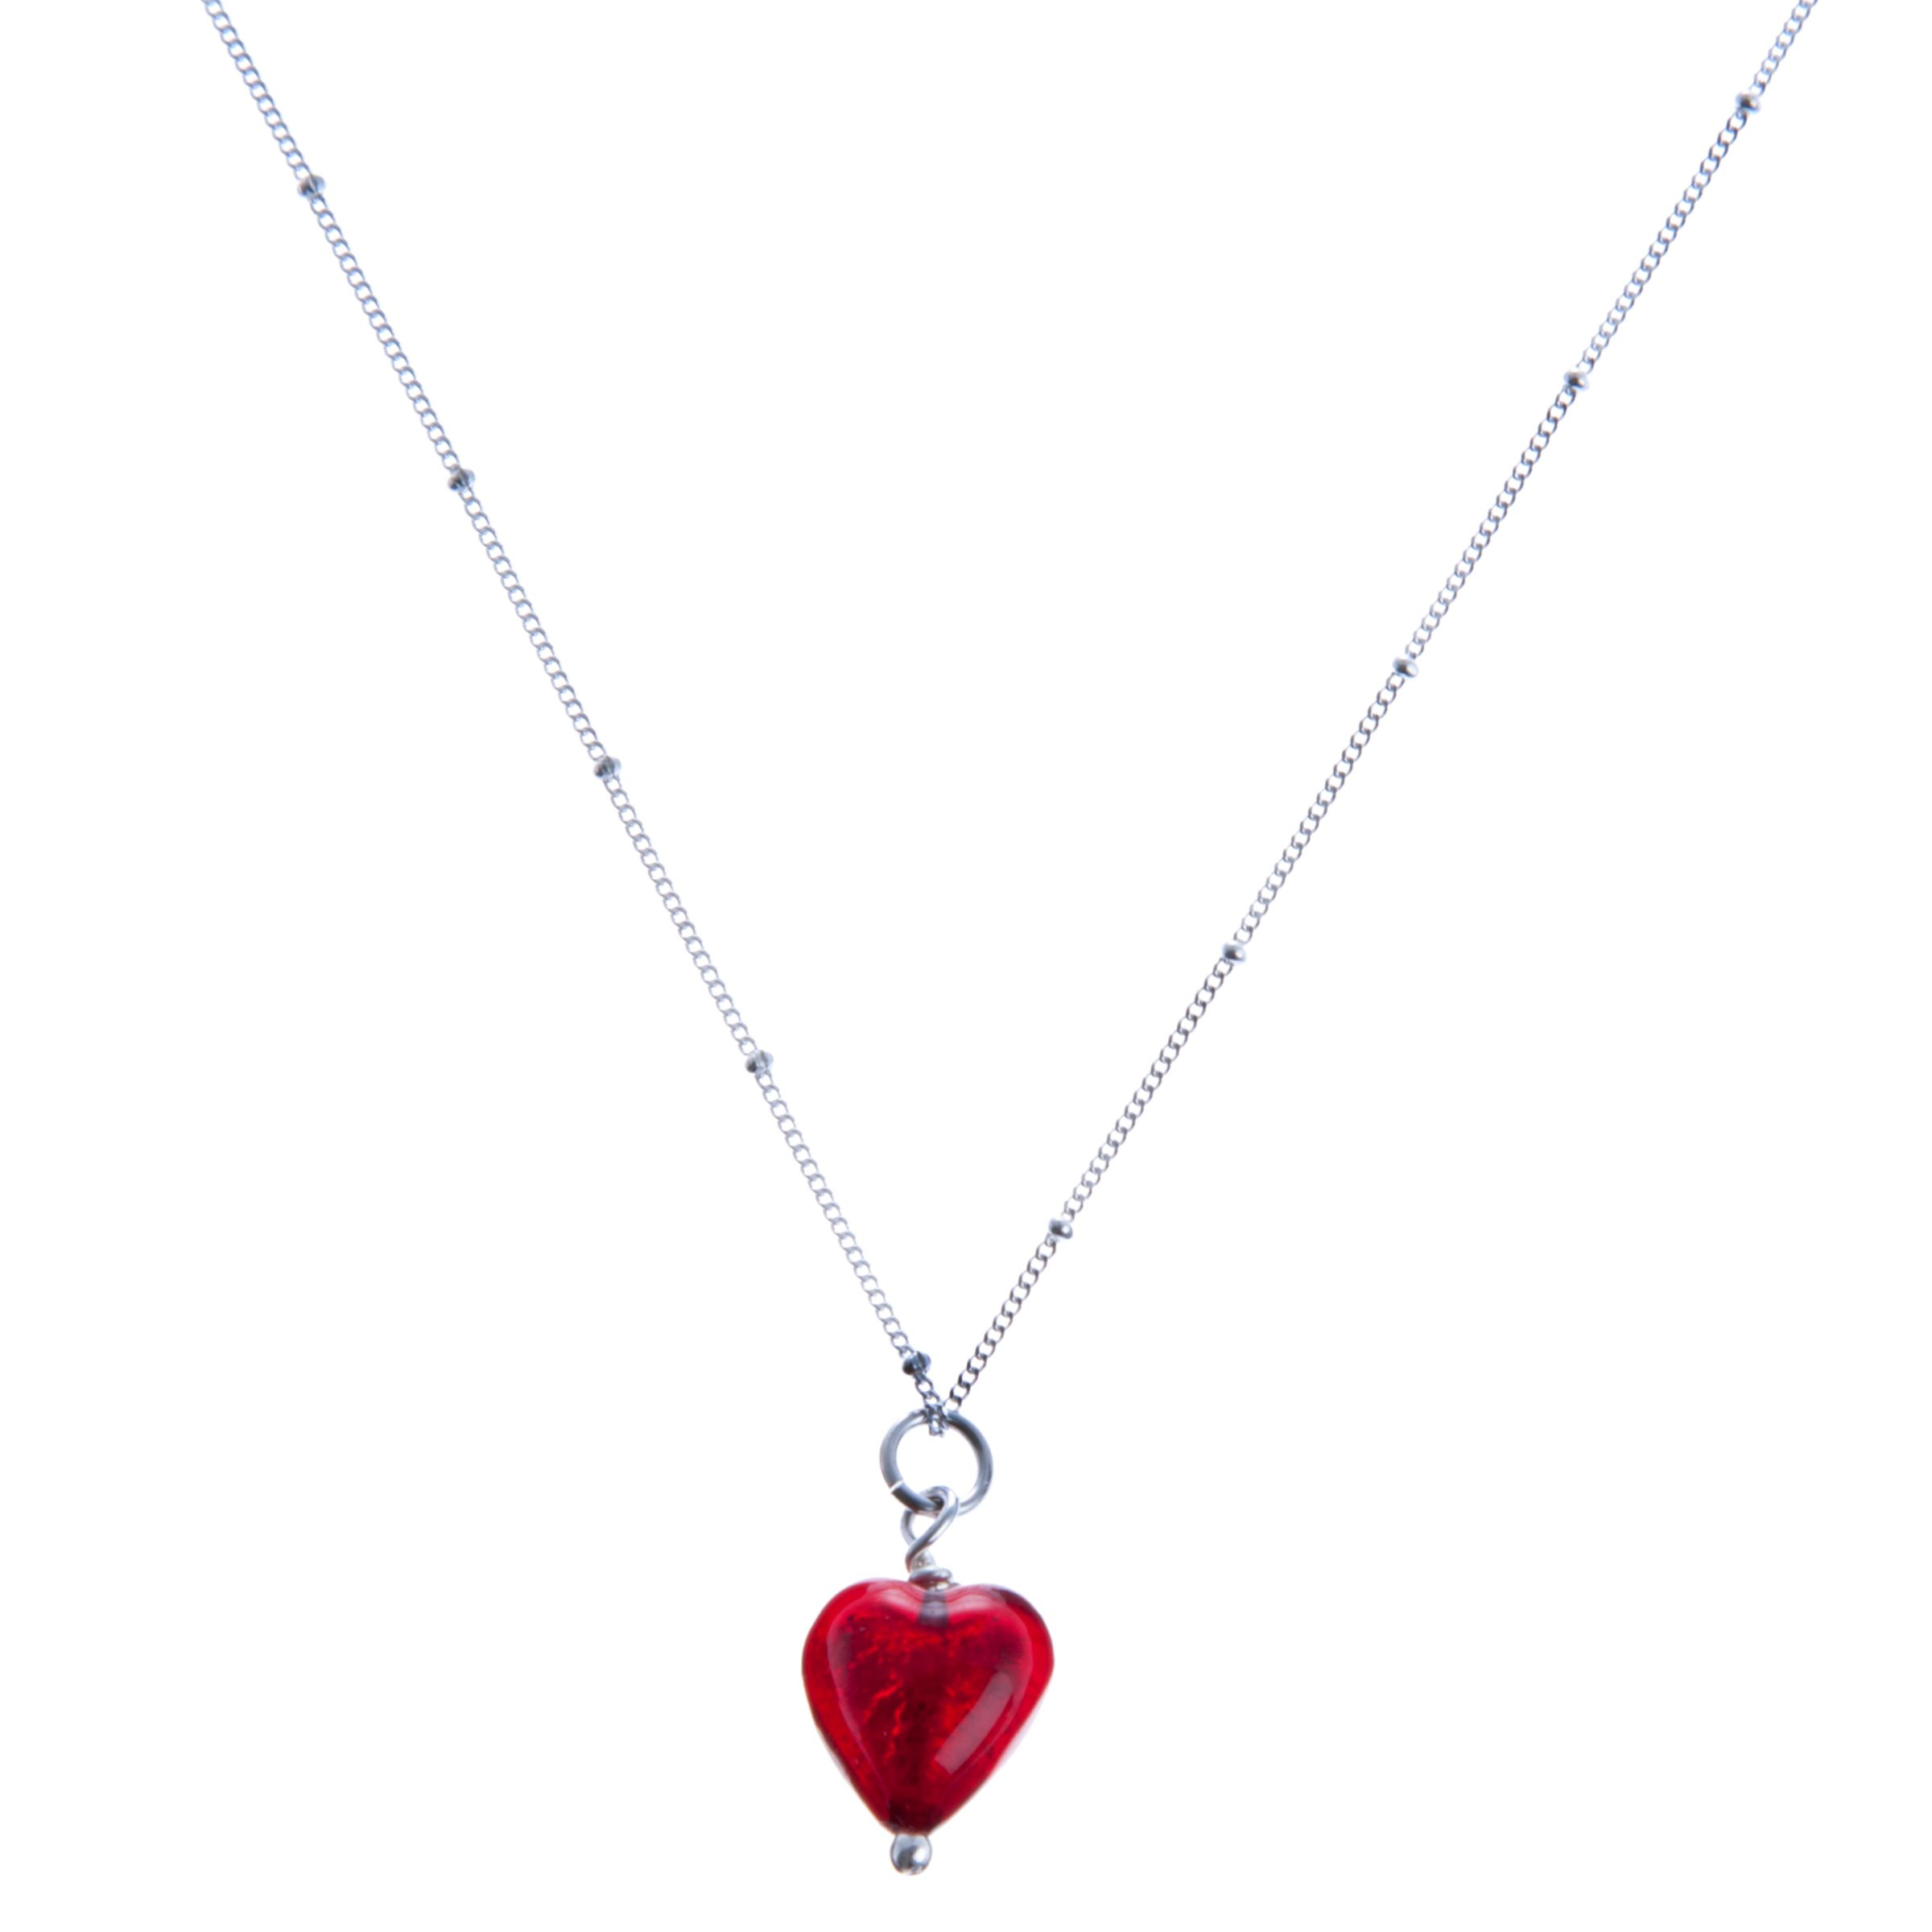 Martick Cranberry Murano Heart Pendant Necklace